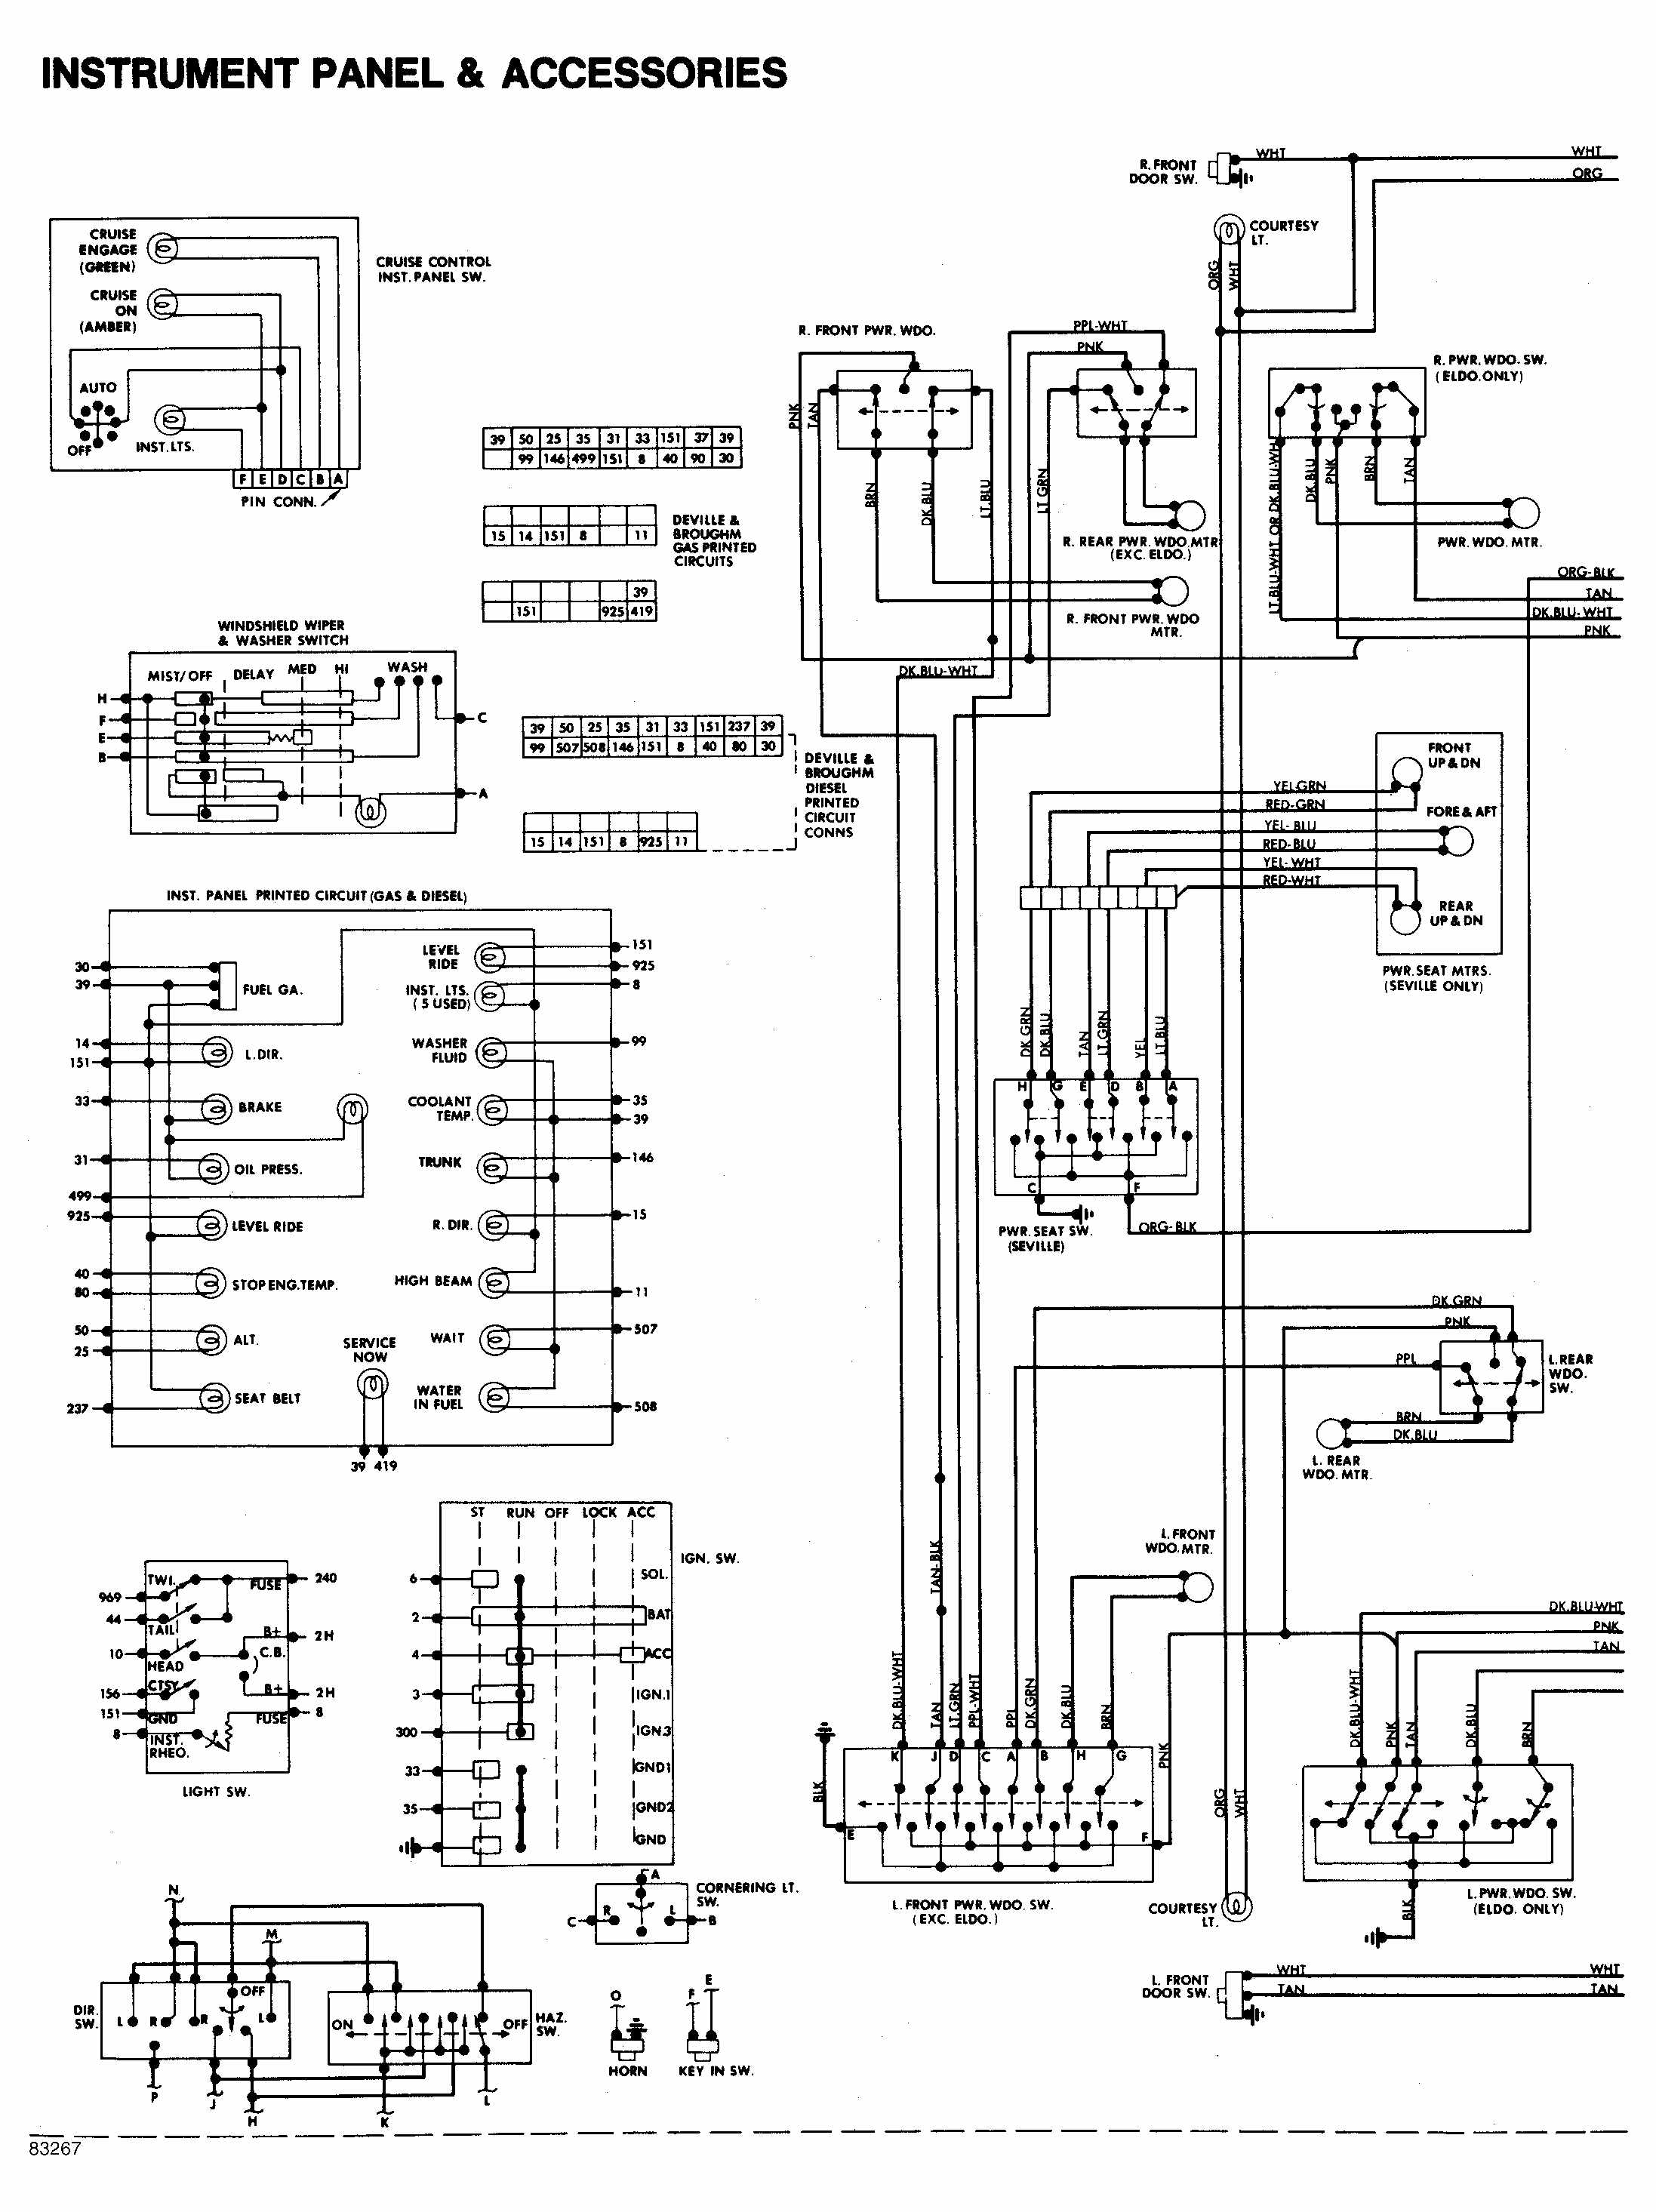 2001 cadillac deville stereo wiring diagram